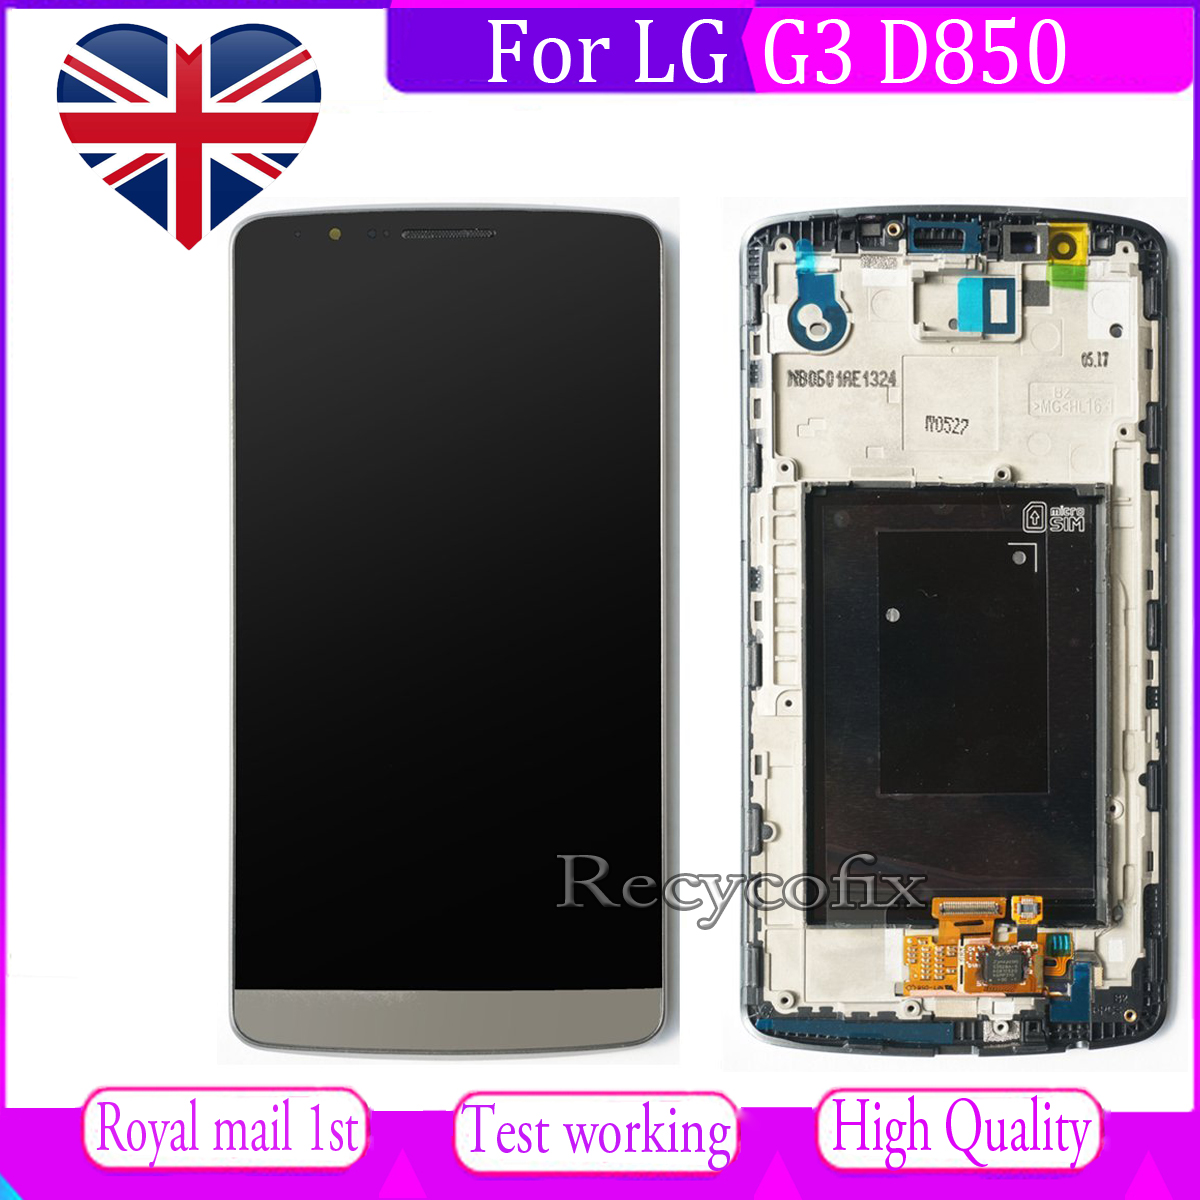 Details about For LG G3 D850 D855 Screen Replacement LCD Touch Digitizer  Display + Frame Grey